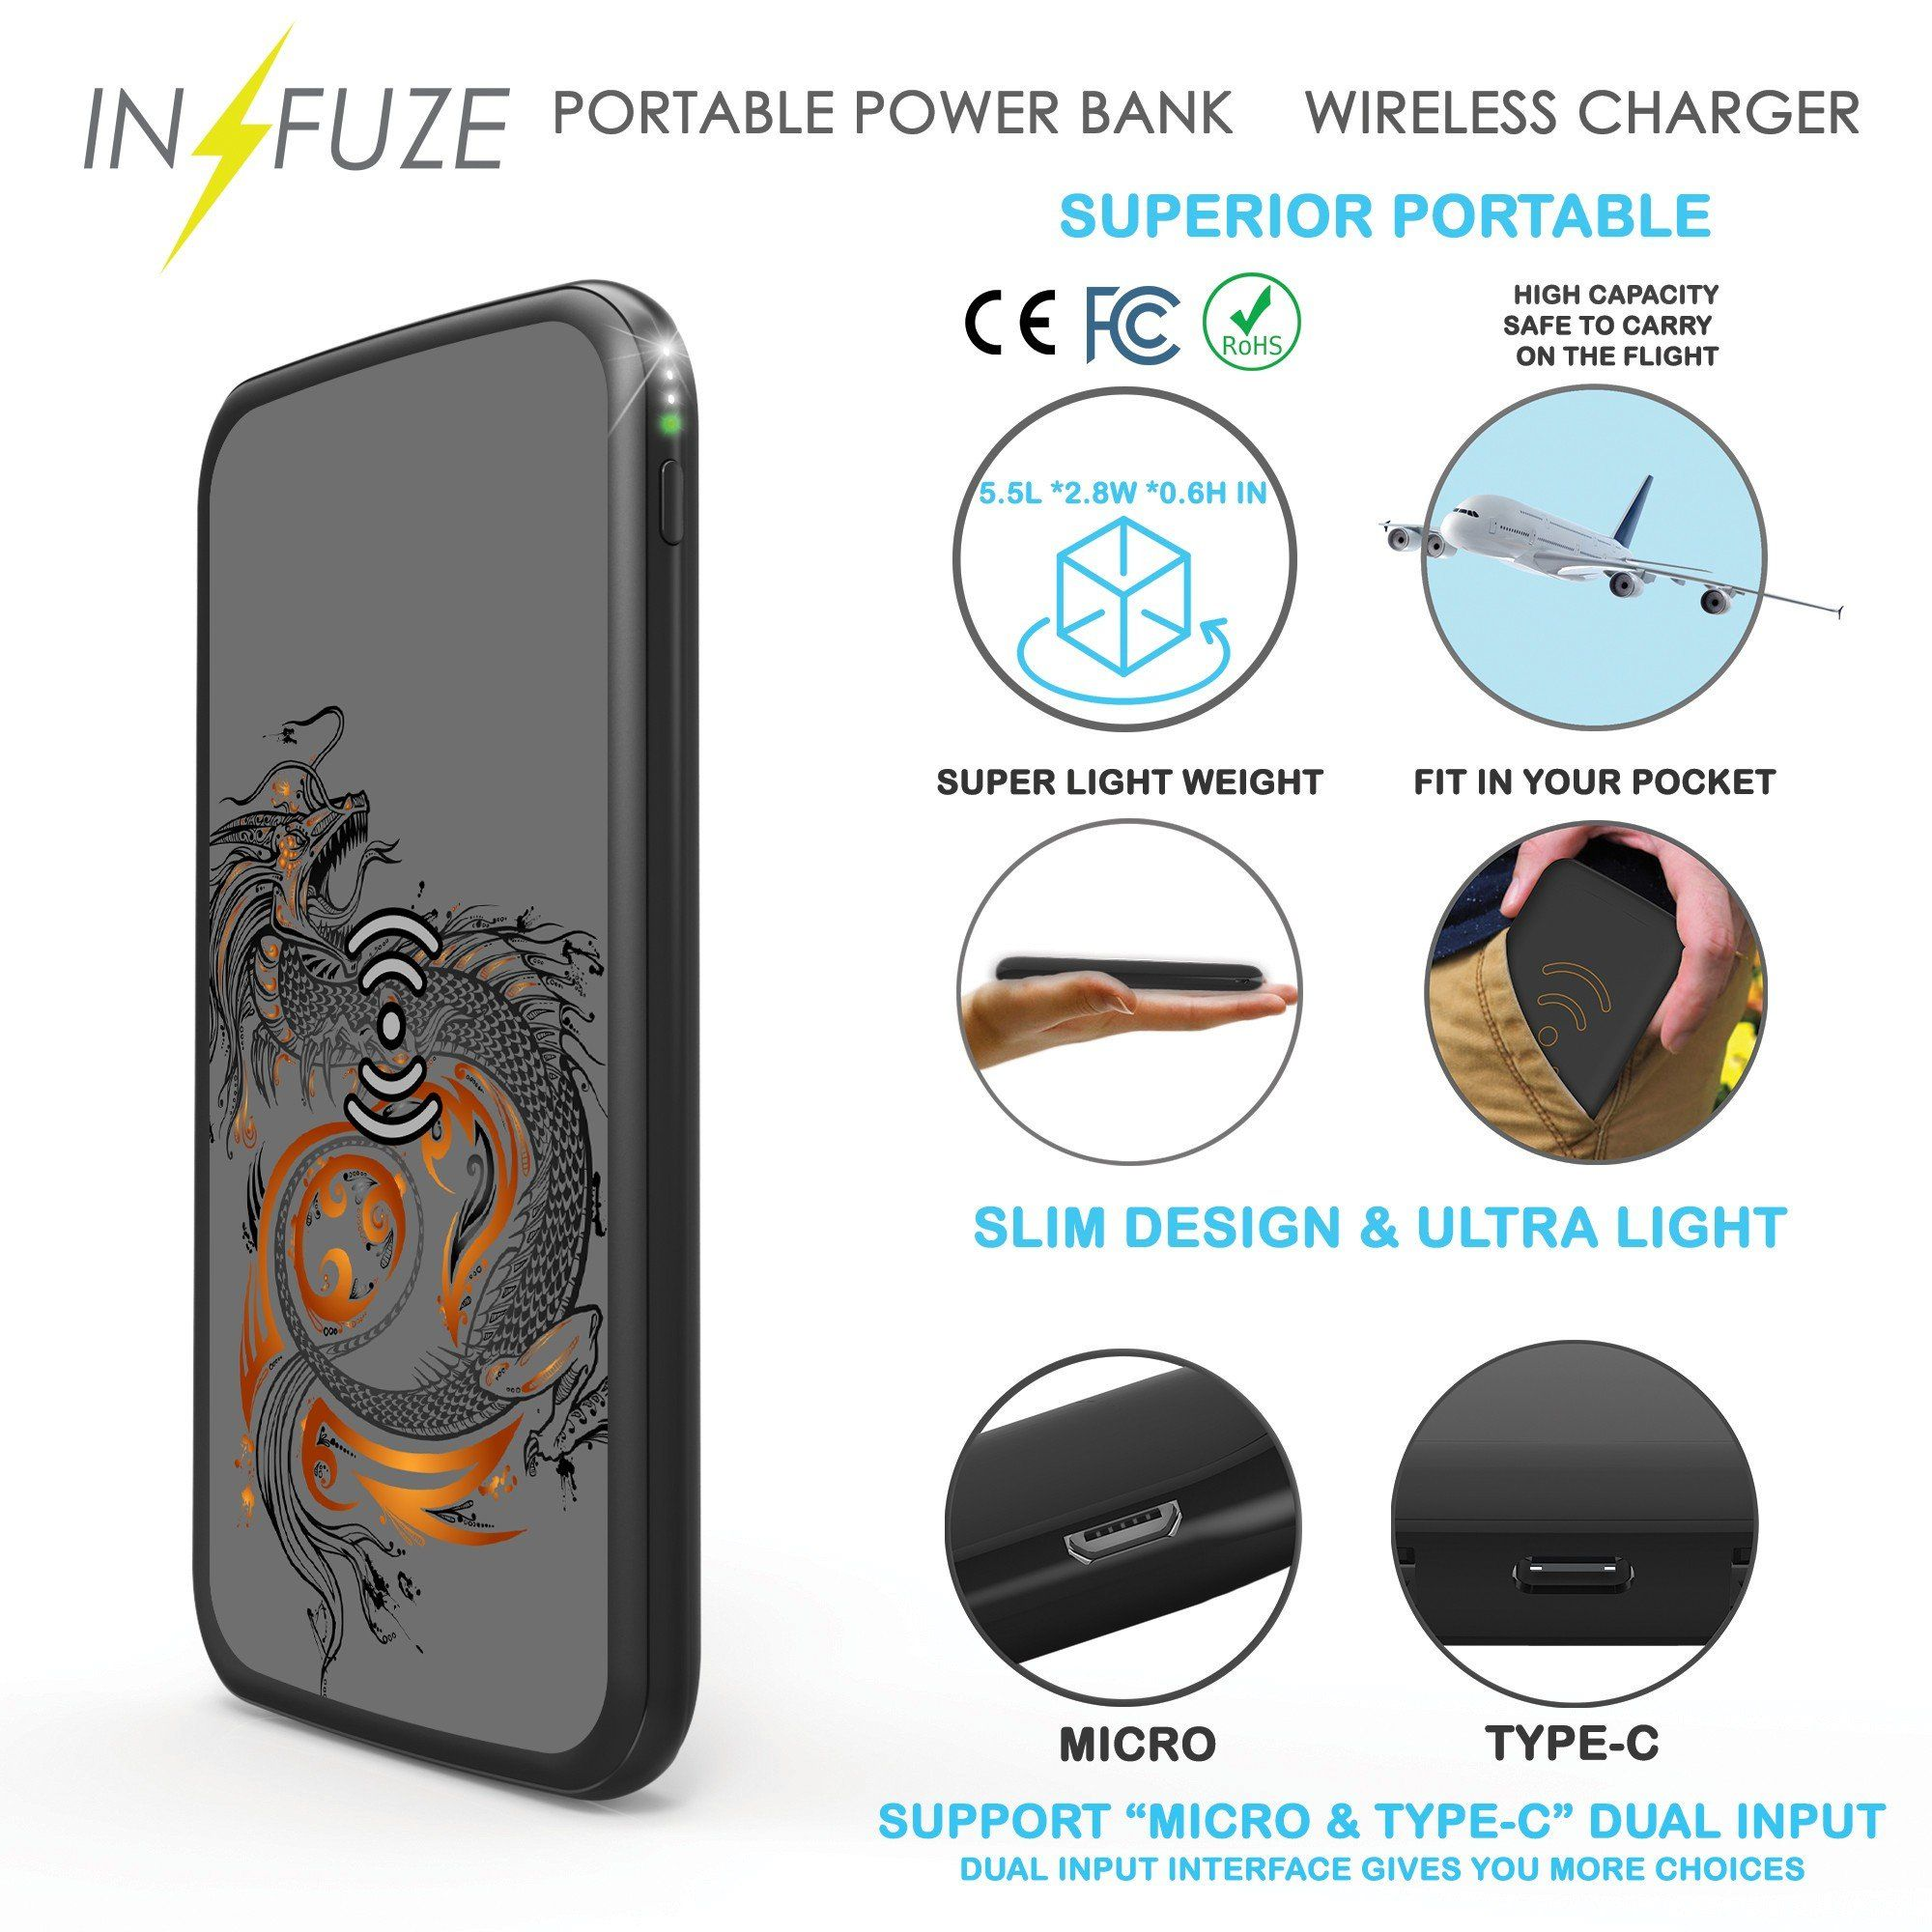 Portable Powerbank Infuze 10000mah Slim Fast Charge Portable Wireless Charger Power Bank For Iphone X Lg Galaxy Not Powerbank Phone Power Bank Wireless Charger